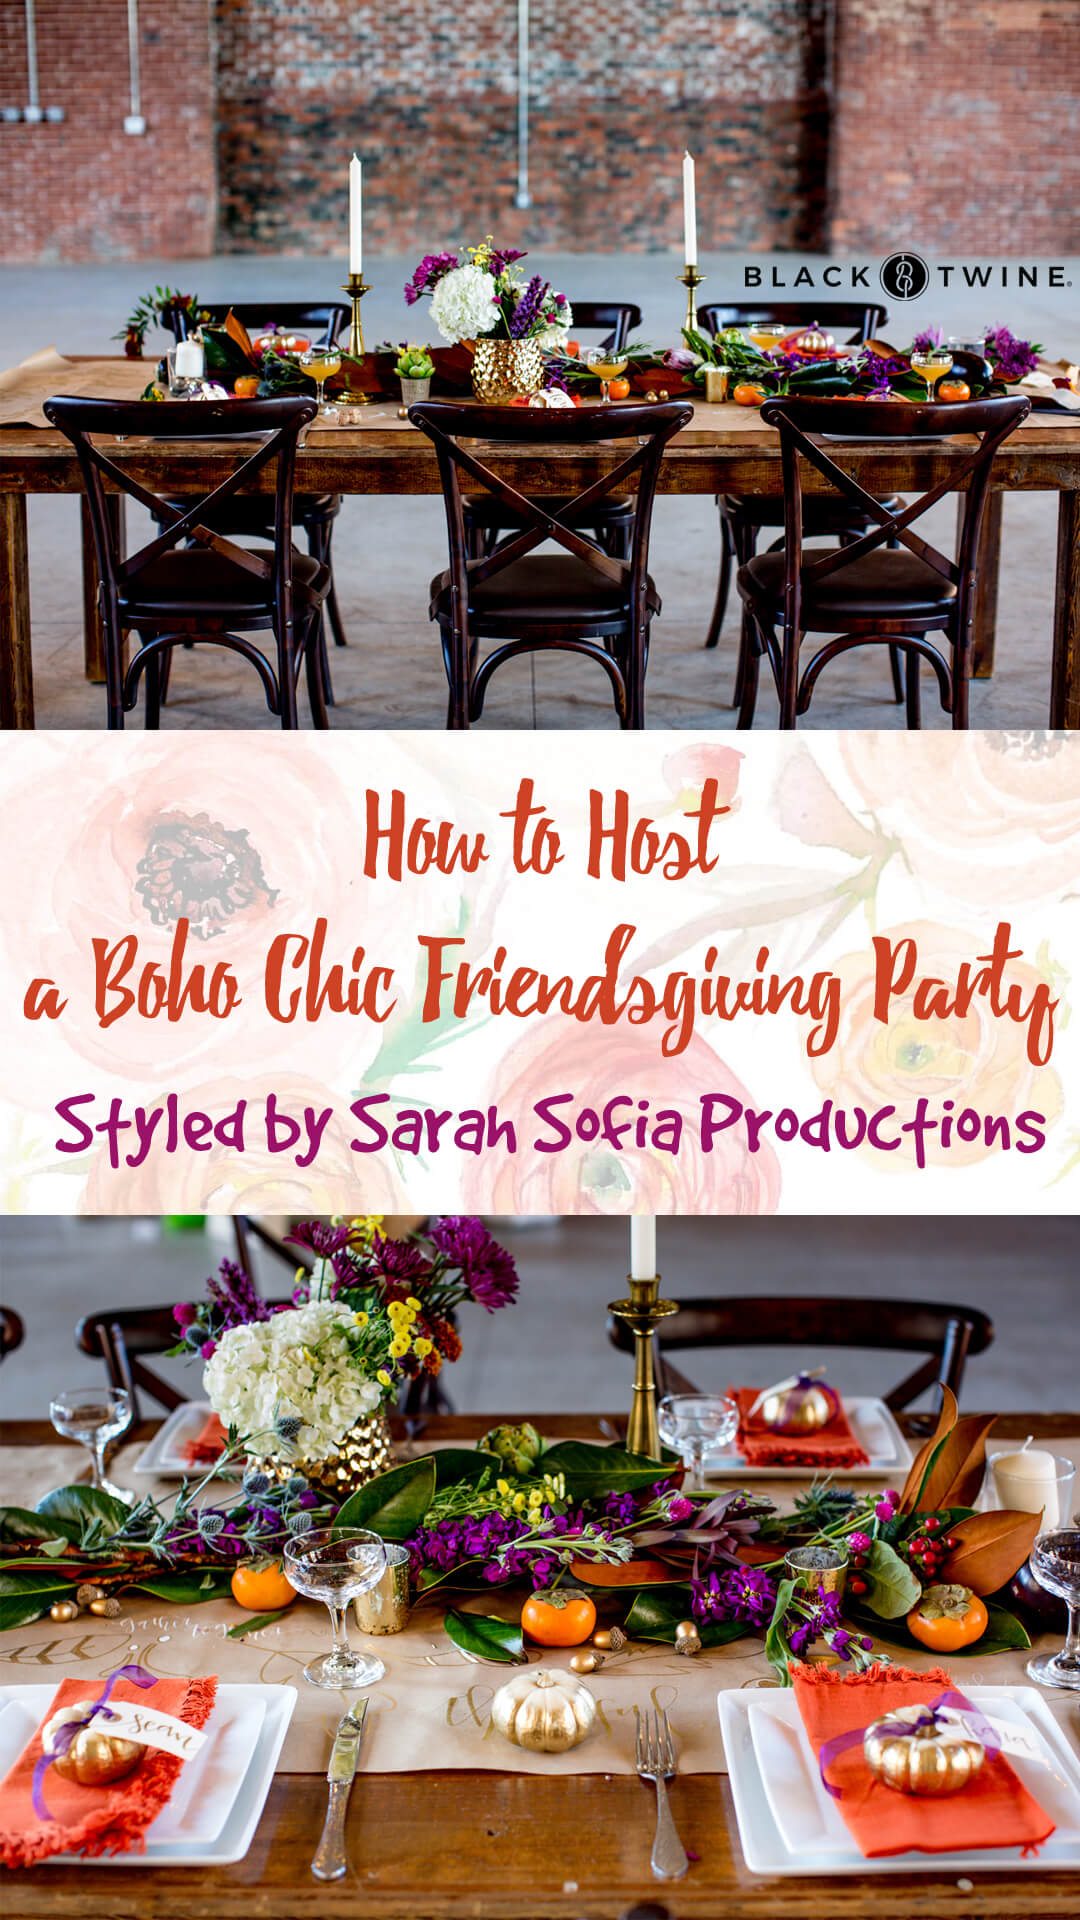 Tablescape and Place Setting from Boho Chic Friendsgiving Party Styled by Sarah Sofia Productions | Black Twine